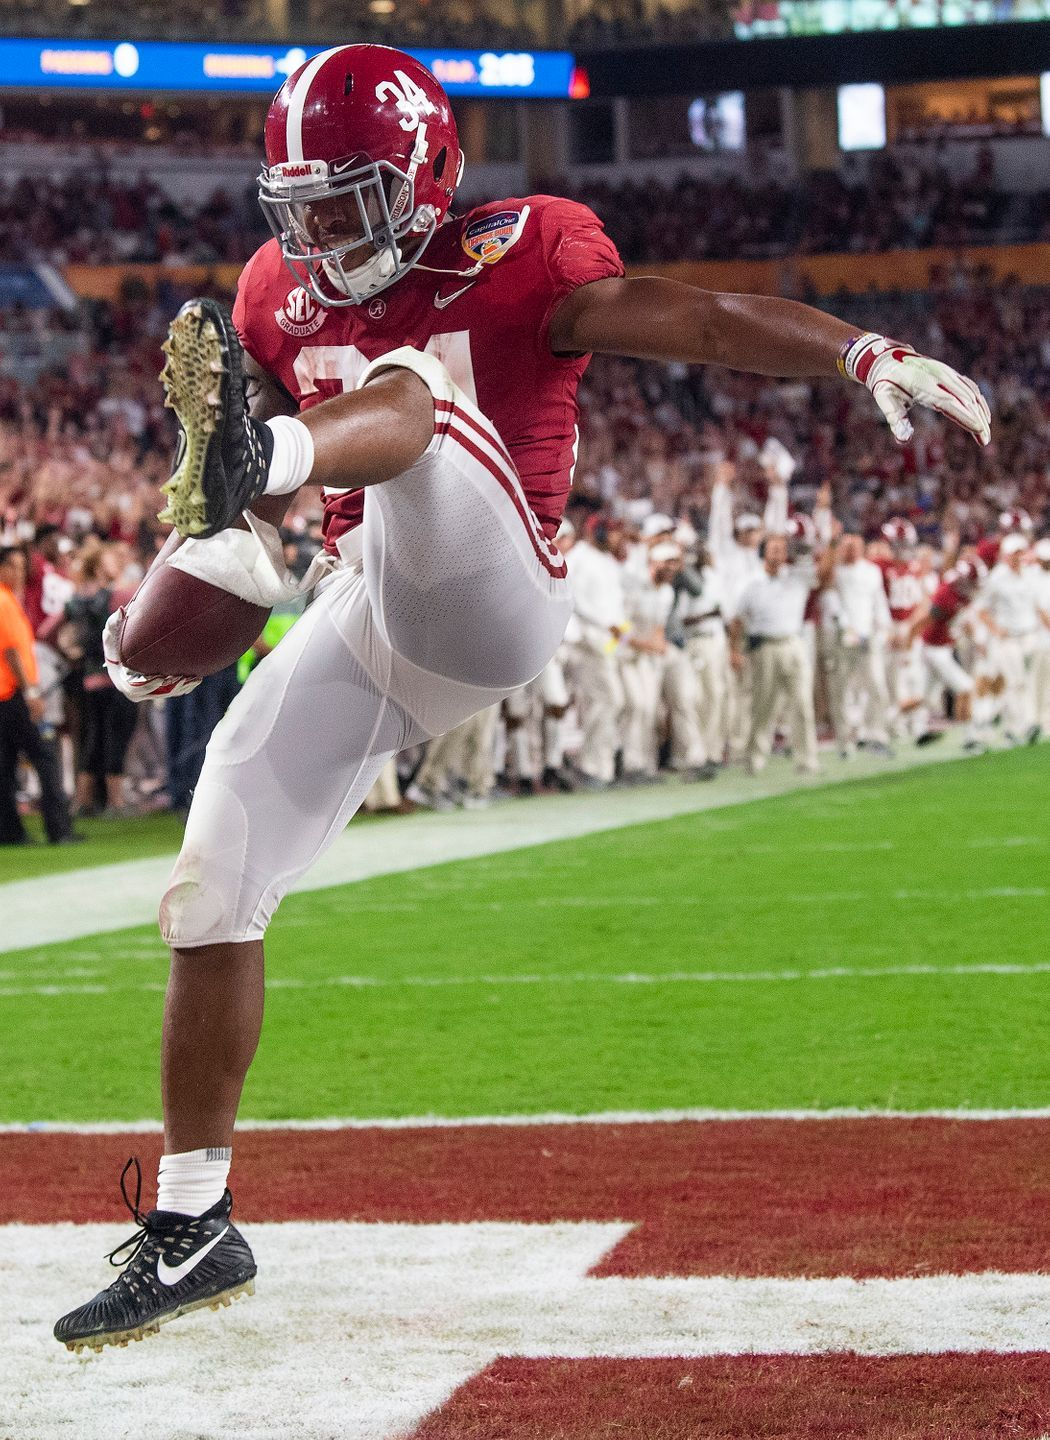 Alabama Running Back Damien Harris 34 Celebrates A Touchdown In First Half Action Of The Orange B Alabama Crimson Tide Football Crimson Tide Football Alabama